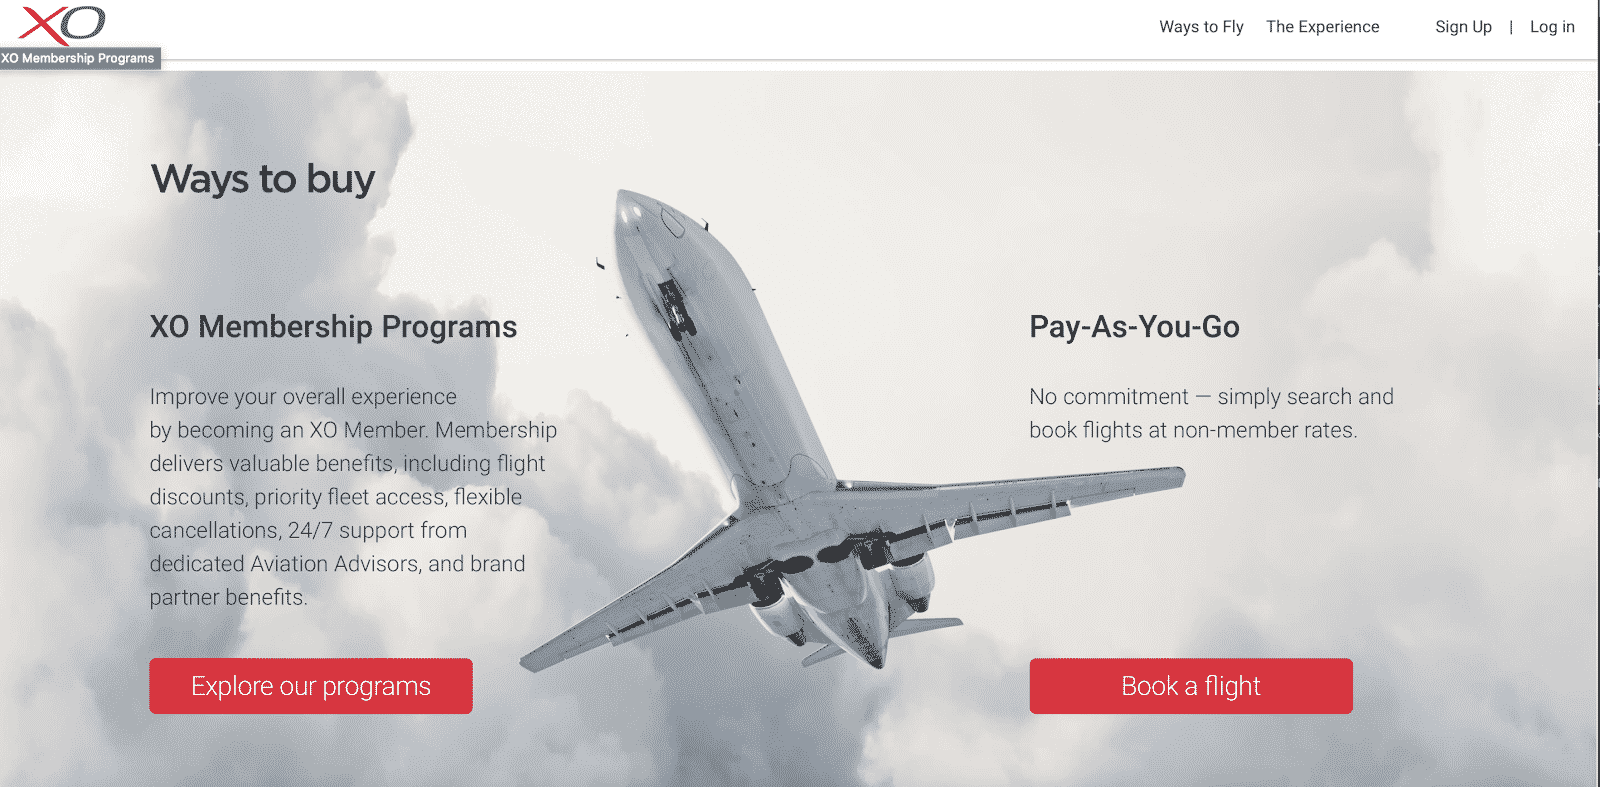 The XOJET Ways to Buy webpage